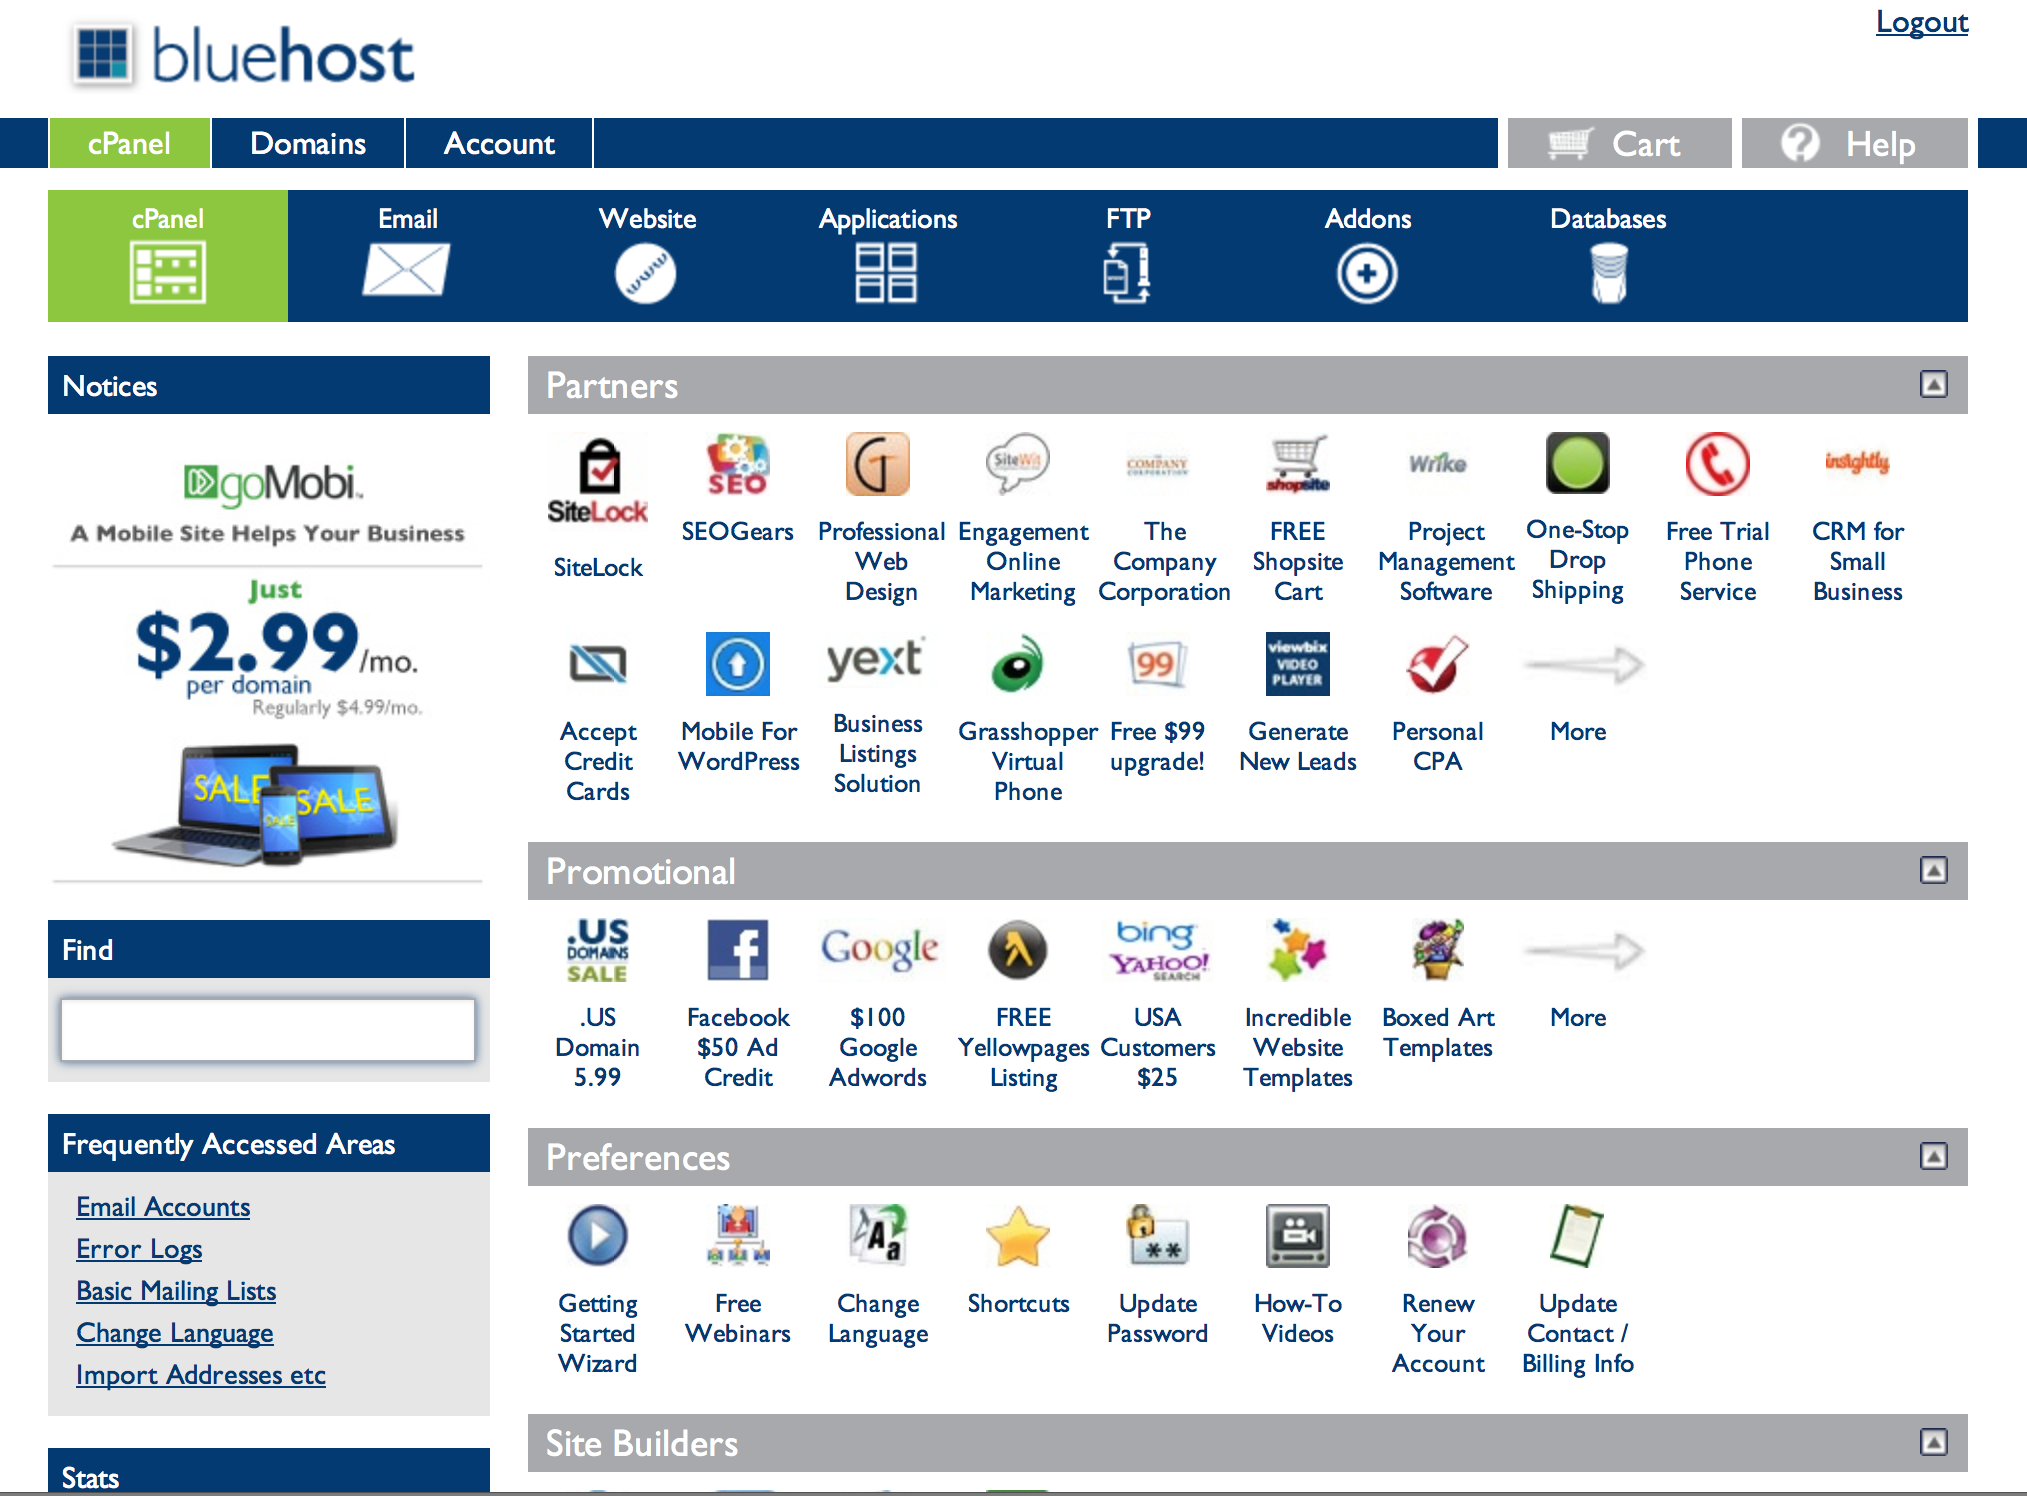 Bluehost review 2020 by Sorav Jain - Intuitive cPanel